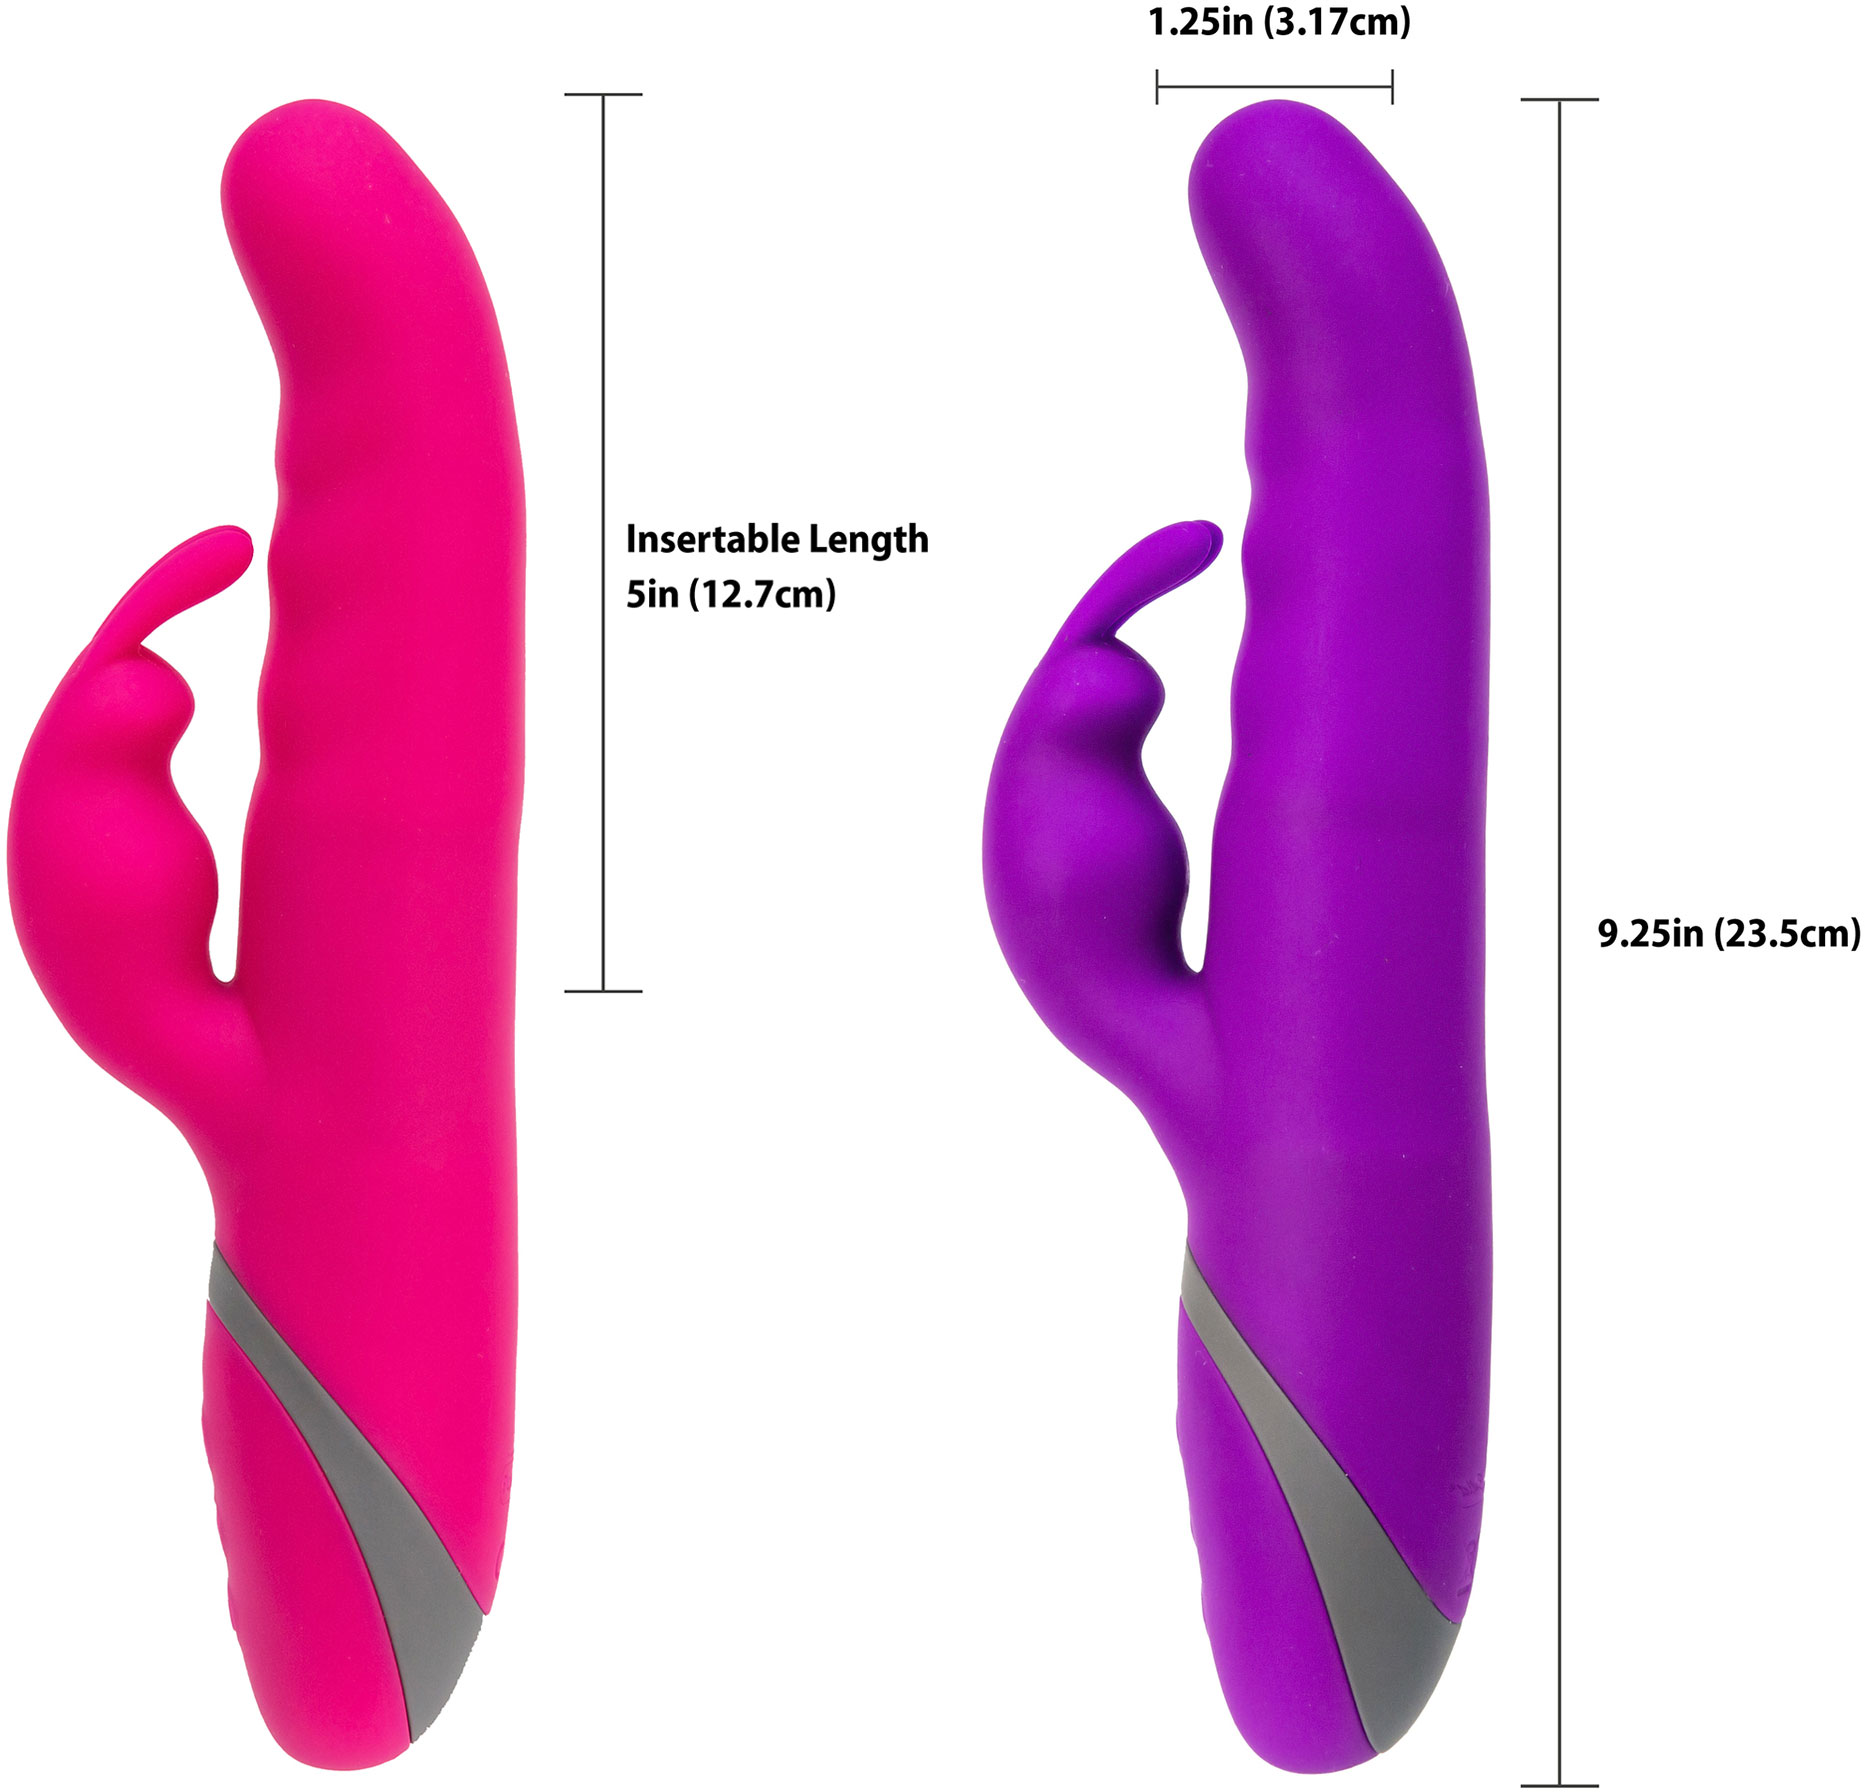 Commotion Cha Cha Silicone Waterproof Rechargeable Dual-Stimulation Vibrator - Functions